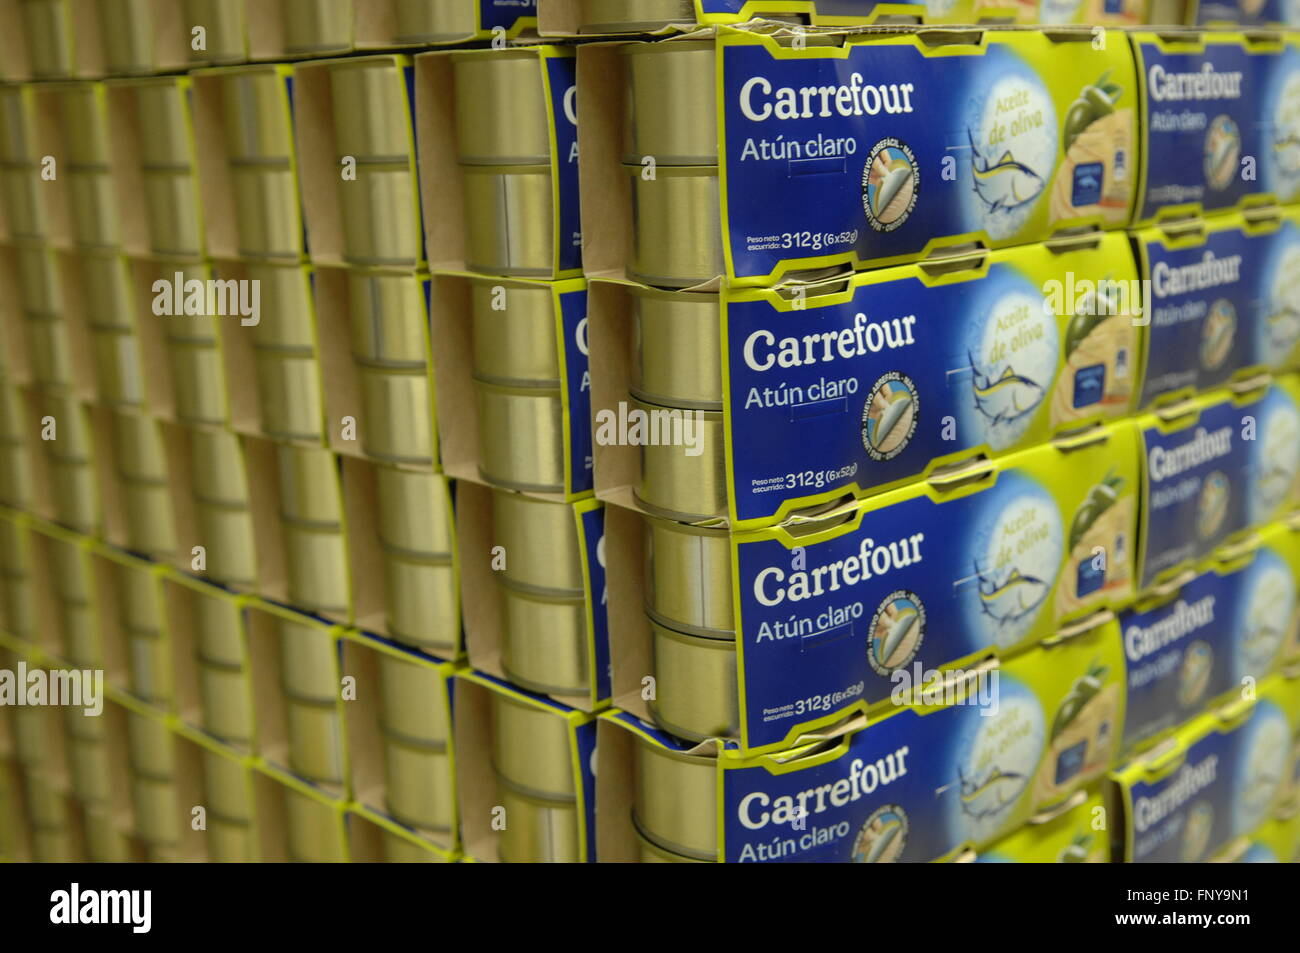 Carrefour own brand Tuna stacked in supermarket  Spain. - Stock Image